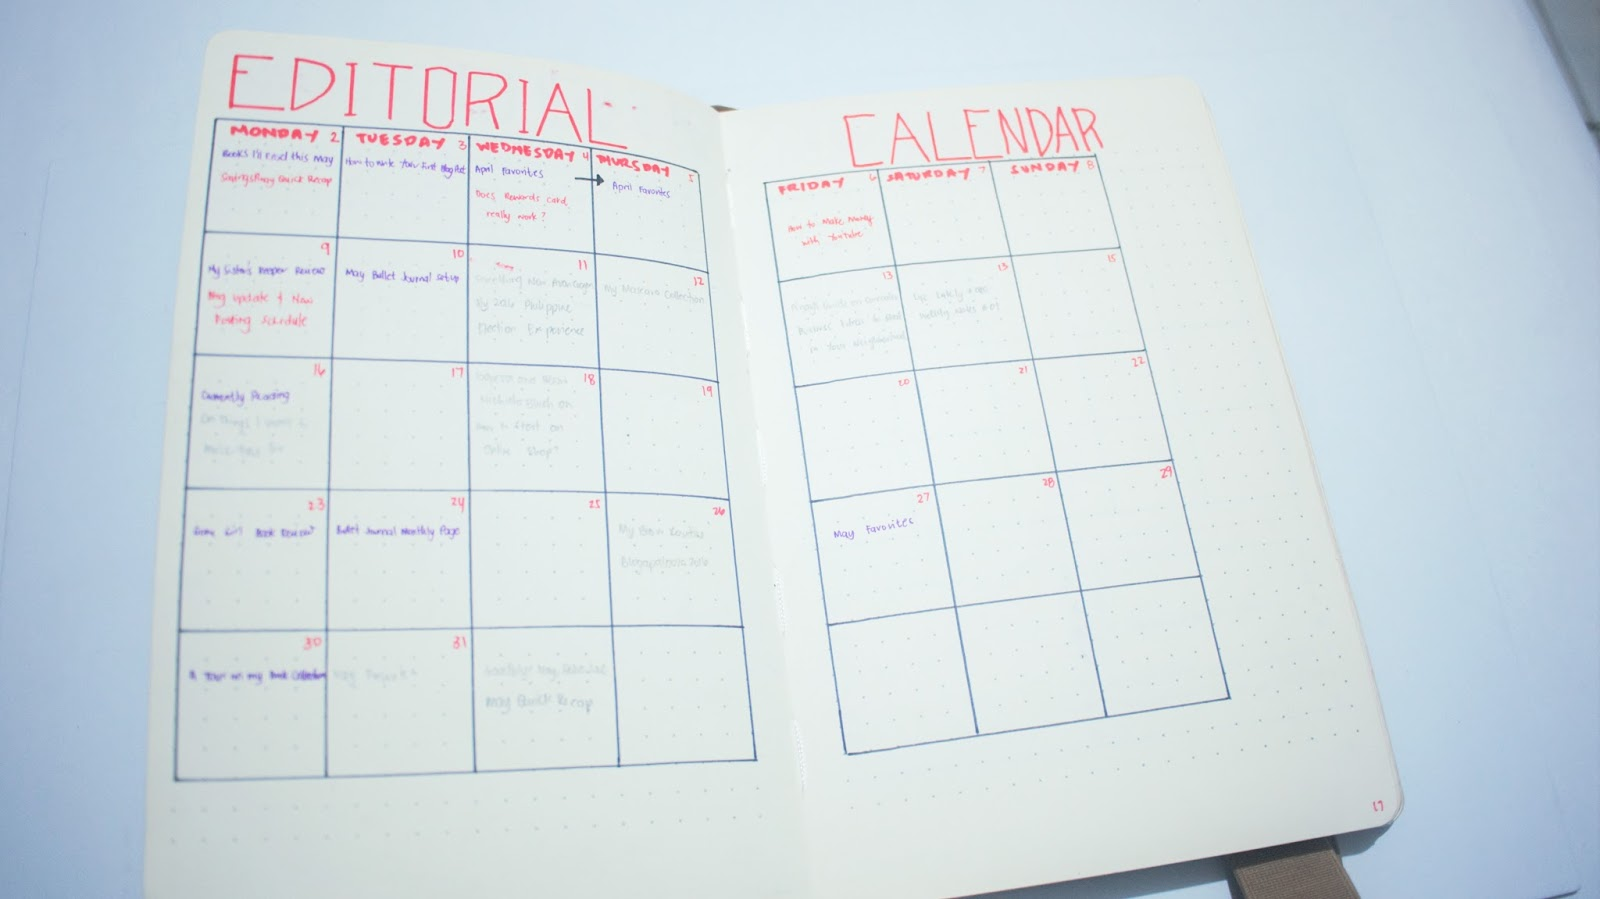 Qt Weekly Calendar : May bullet journal set up izzaglino pinay beauty